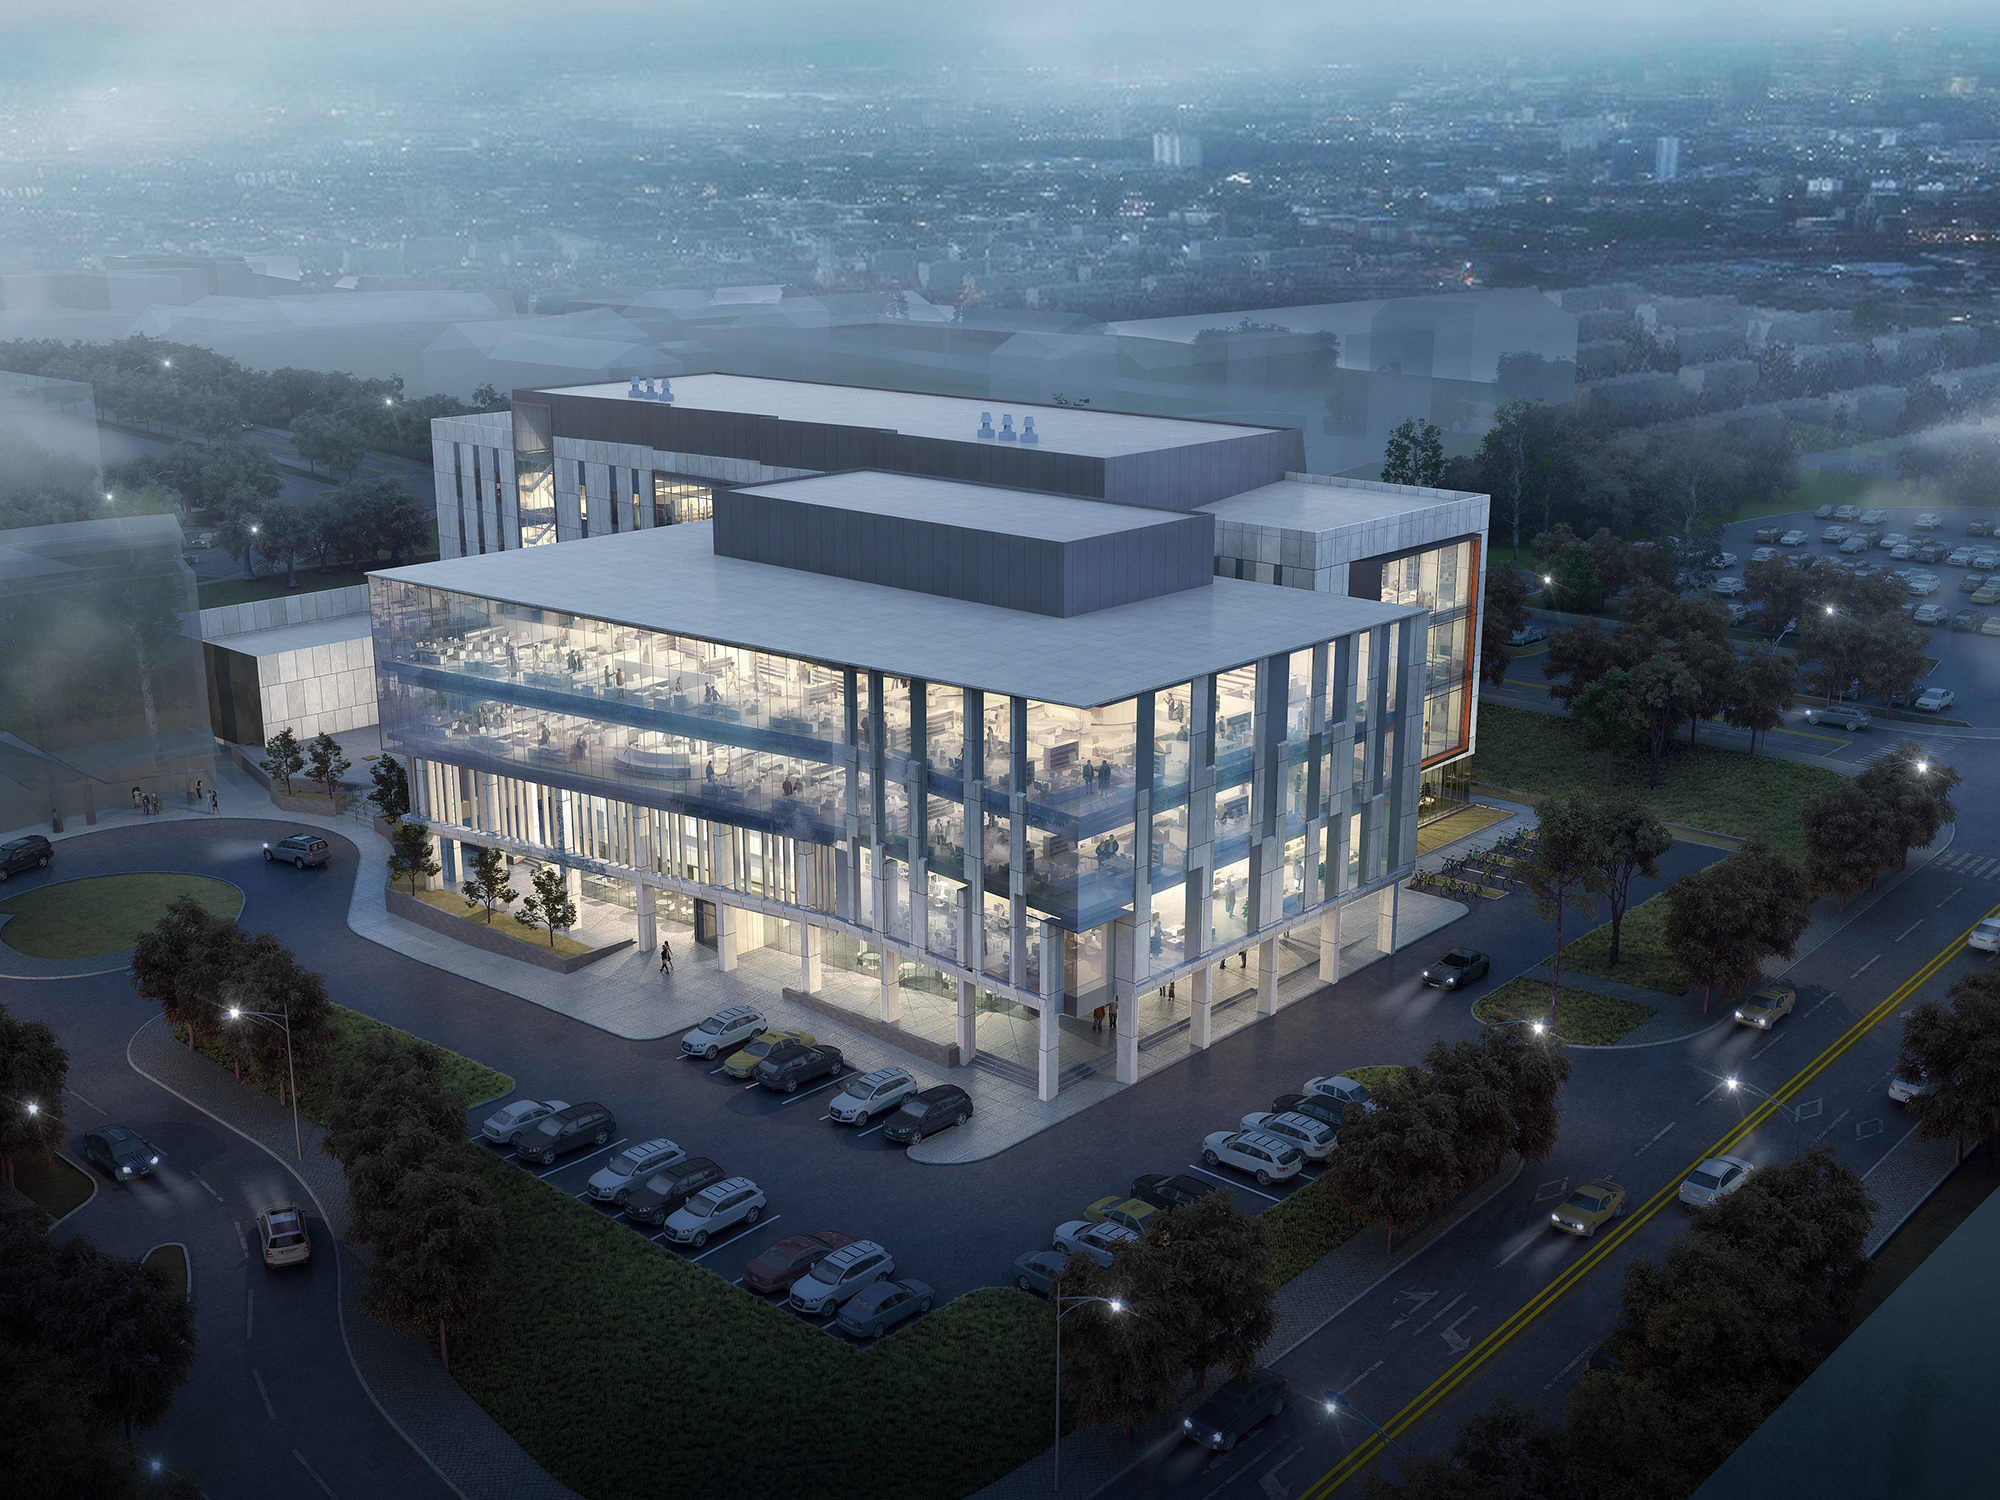 rendering of next gen precision health building at night